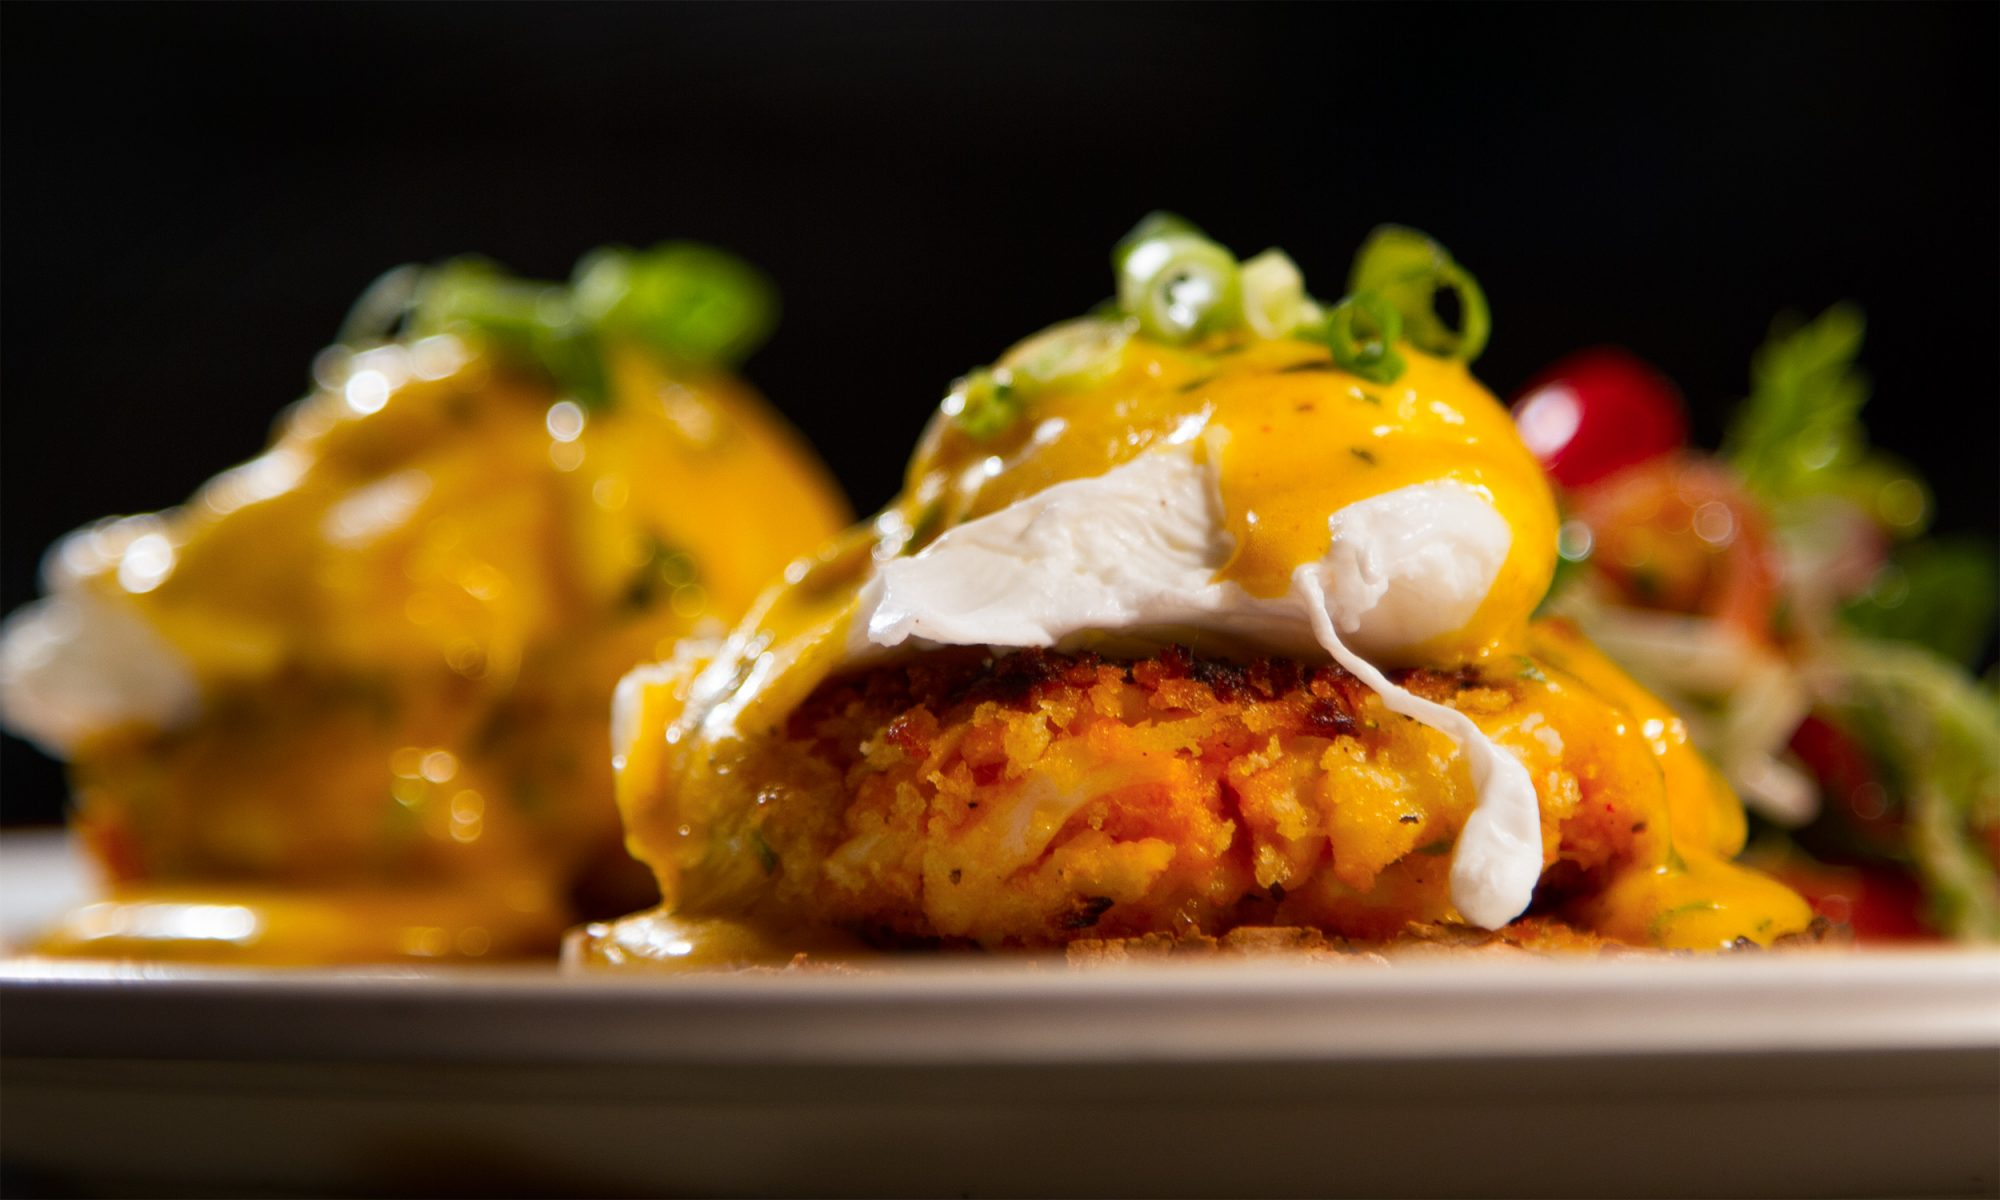 This Eggs Benedict with Crab Cakes and Old Bay Hollandaise Is Peak Maryland